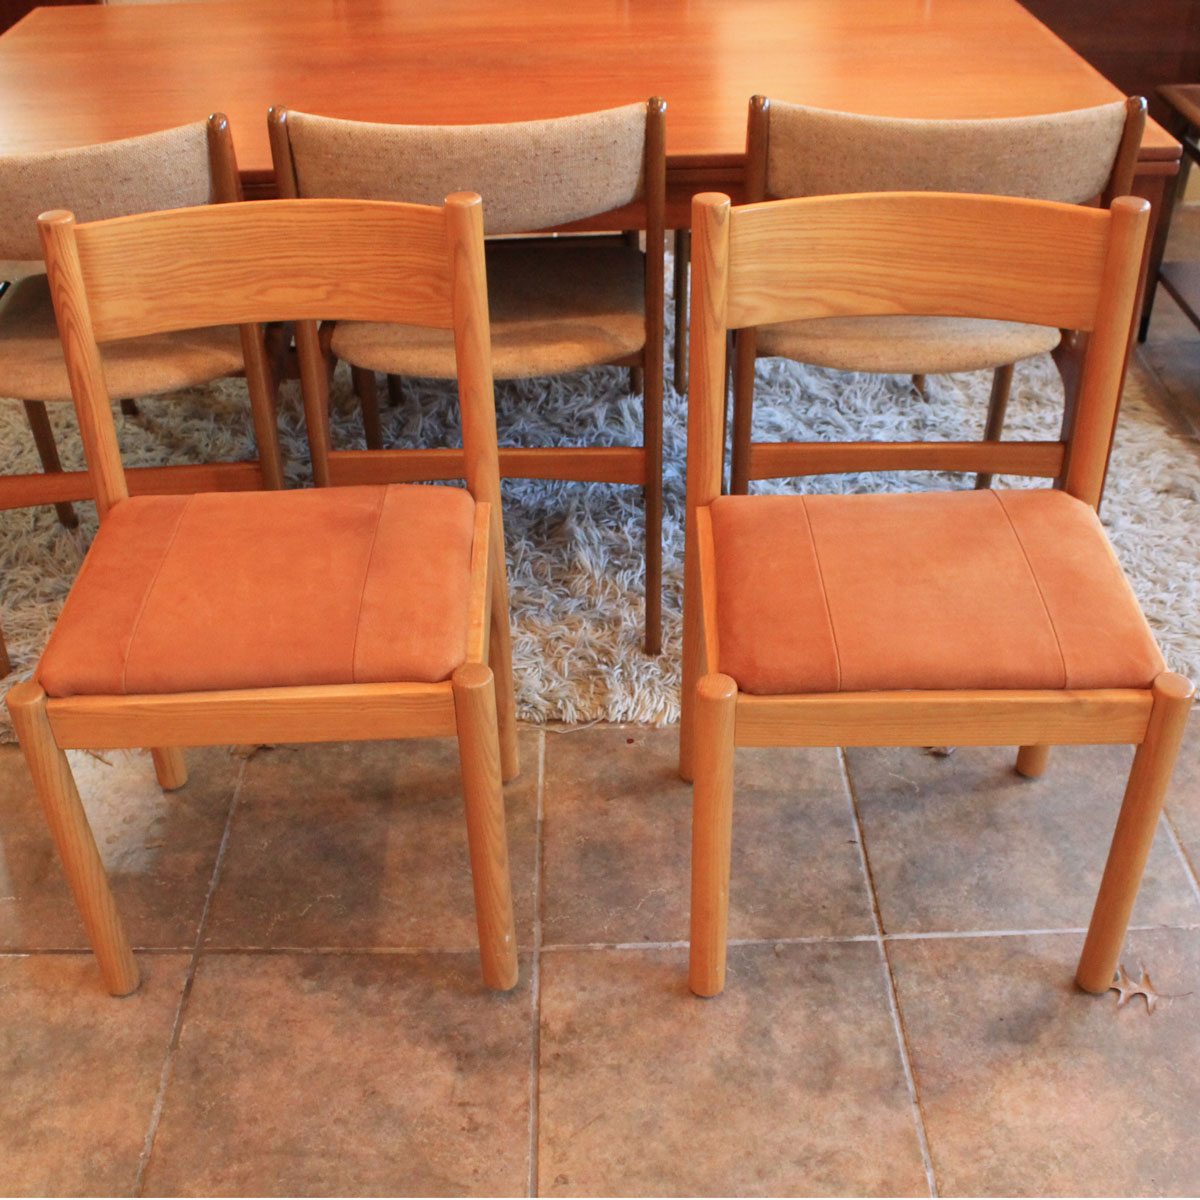 Accent Chairs Sold In Pairs.Pair Of Accent Chairs W Suede Seats